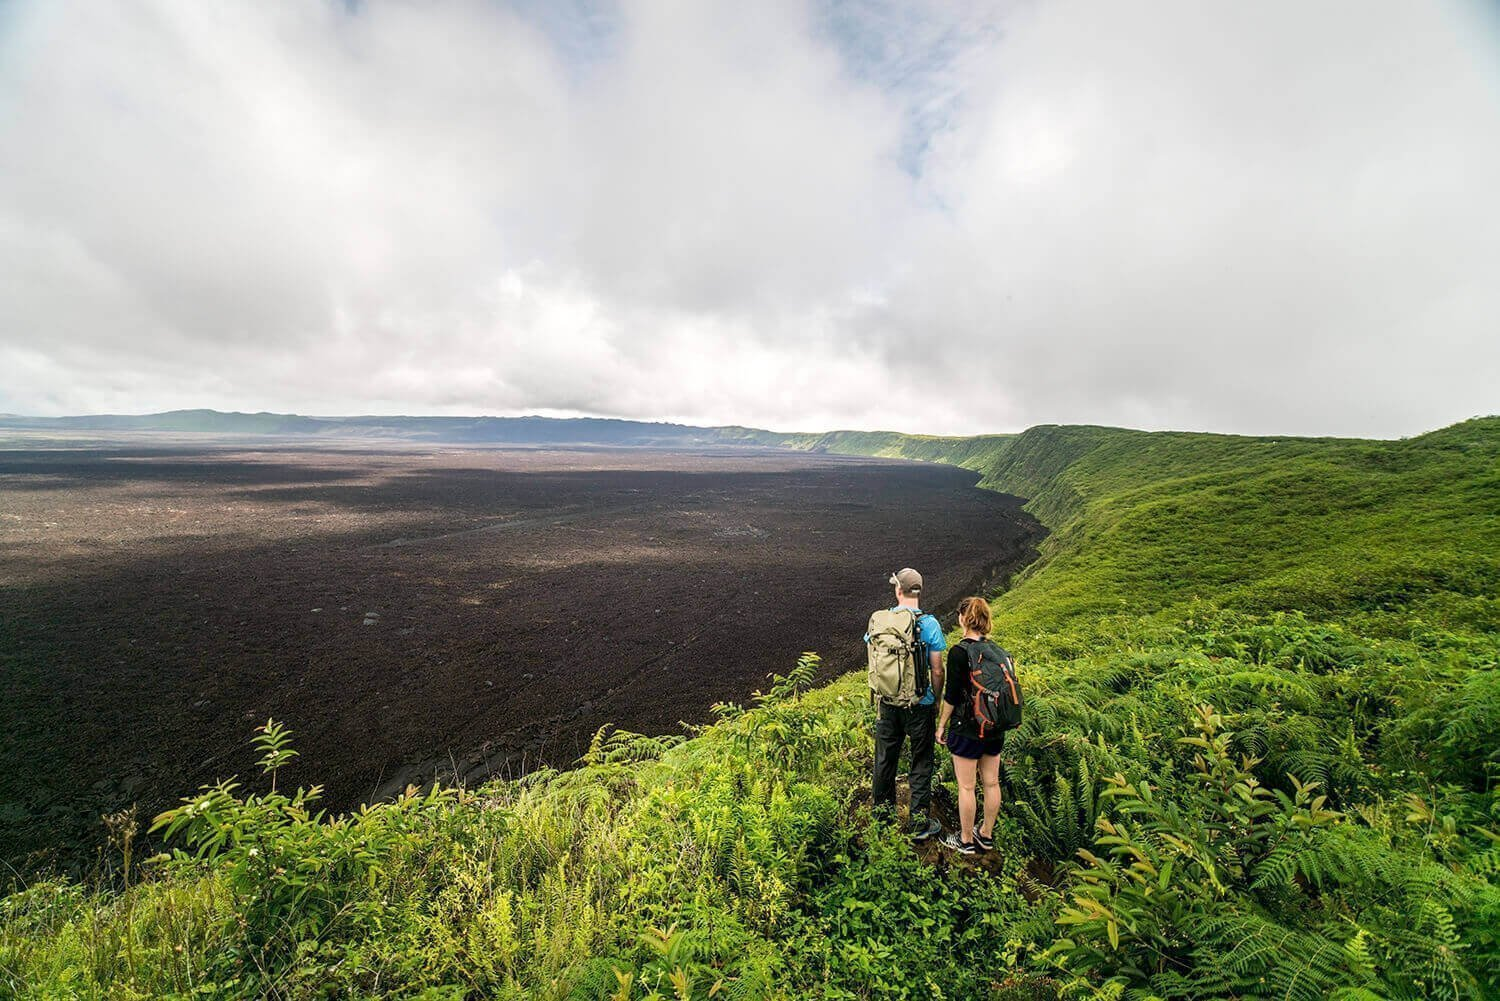 Things to do in Galapagos - Hiking and trekking